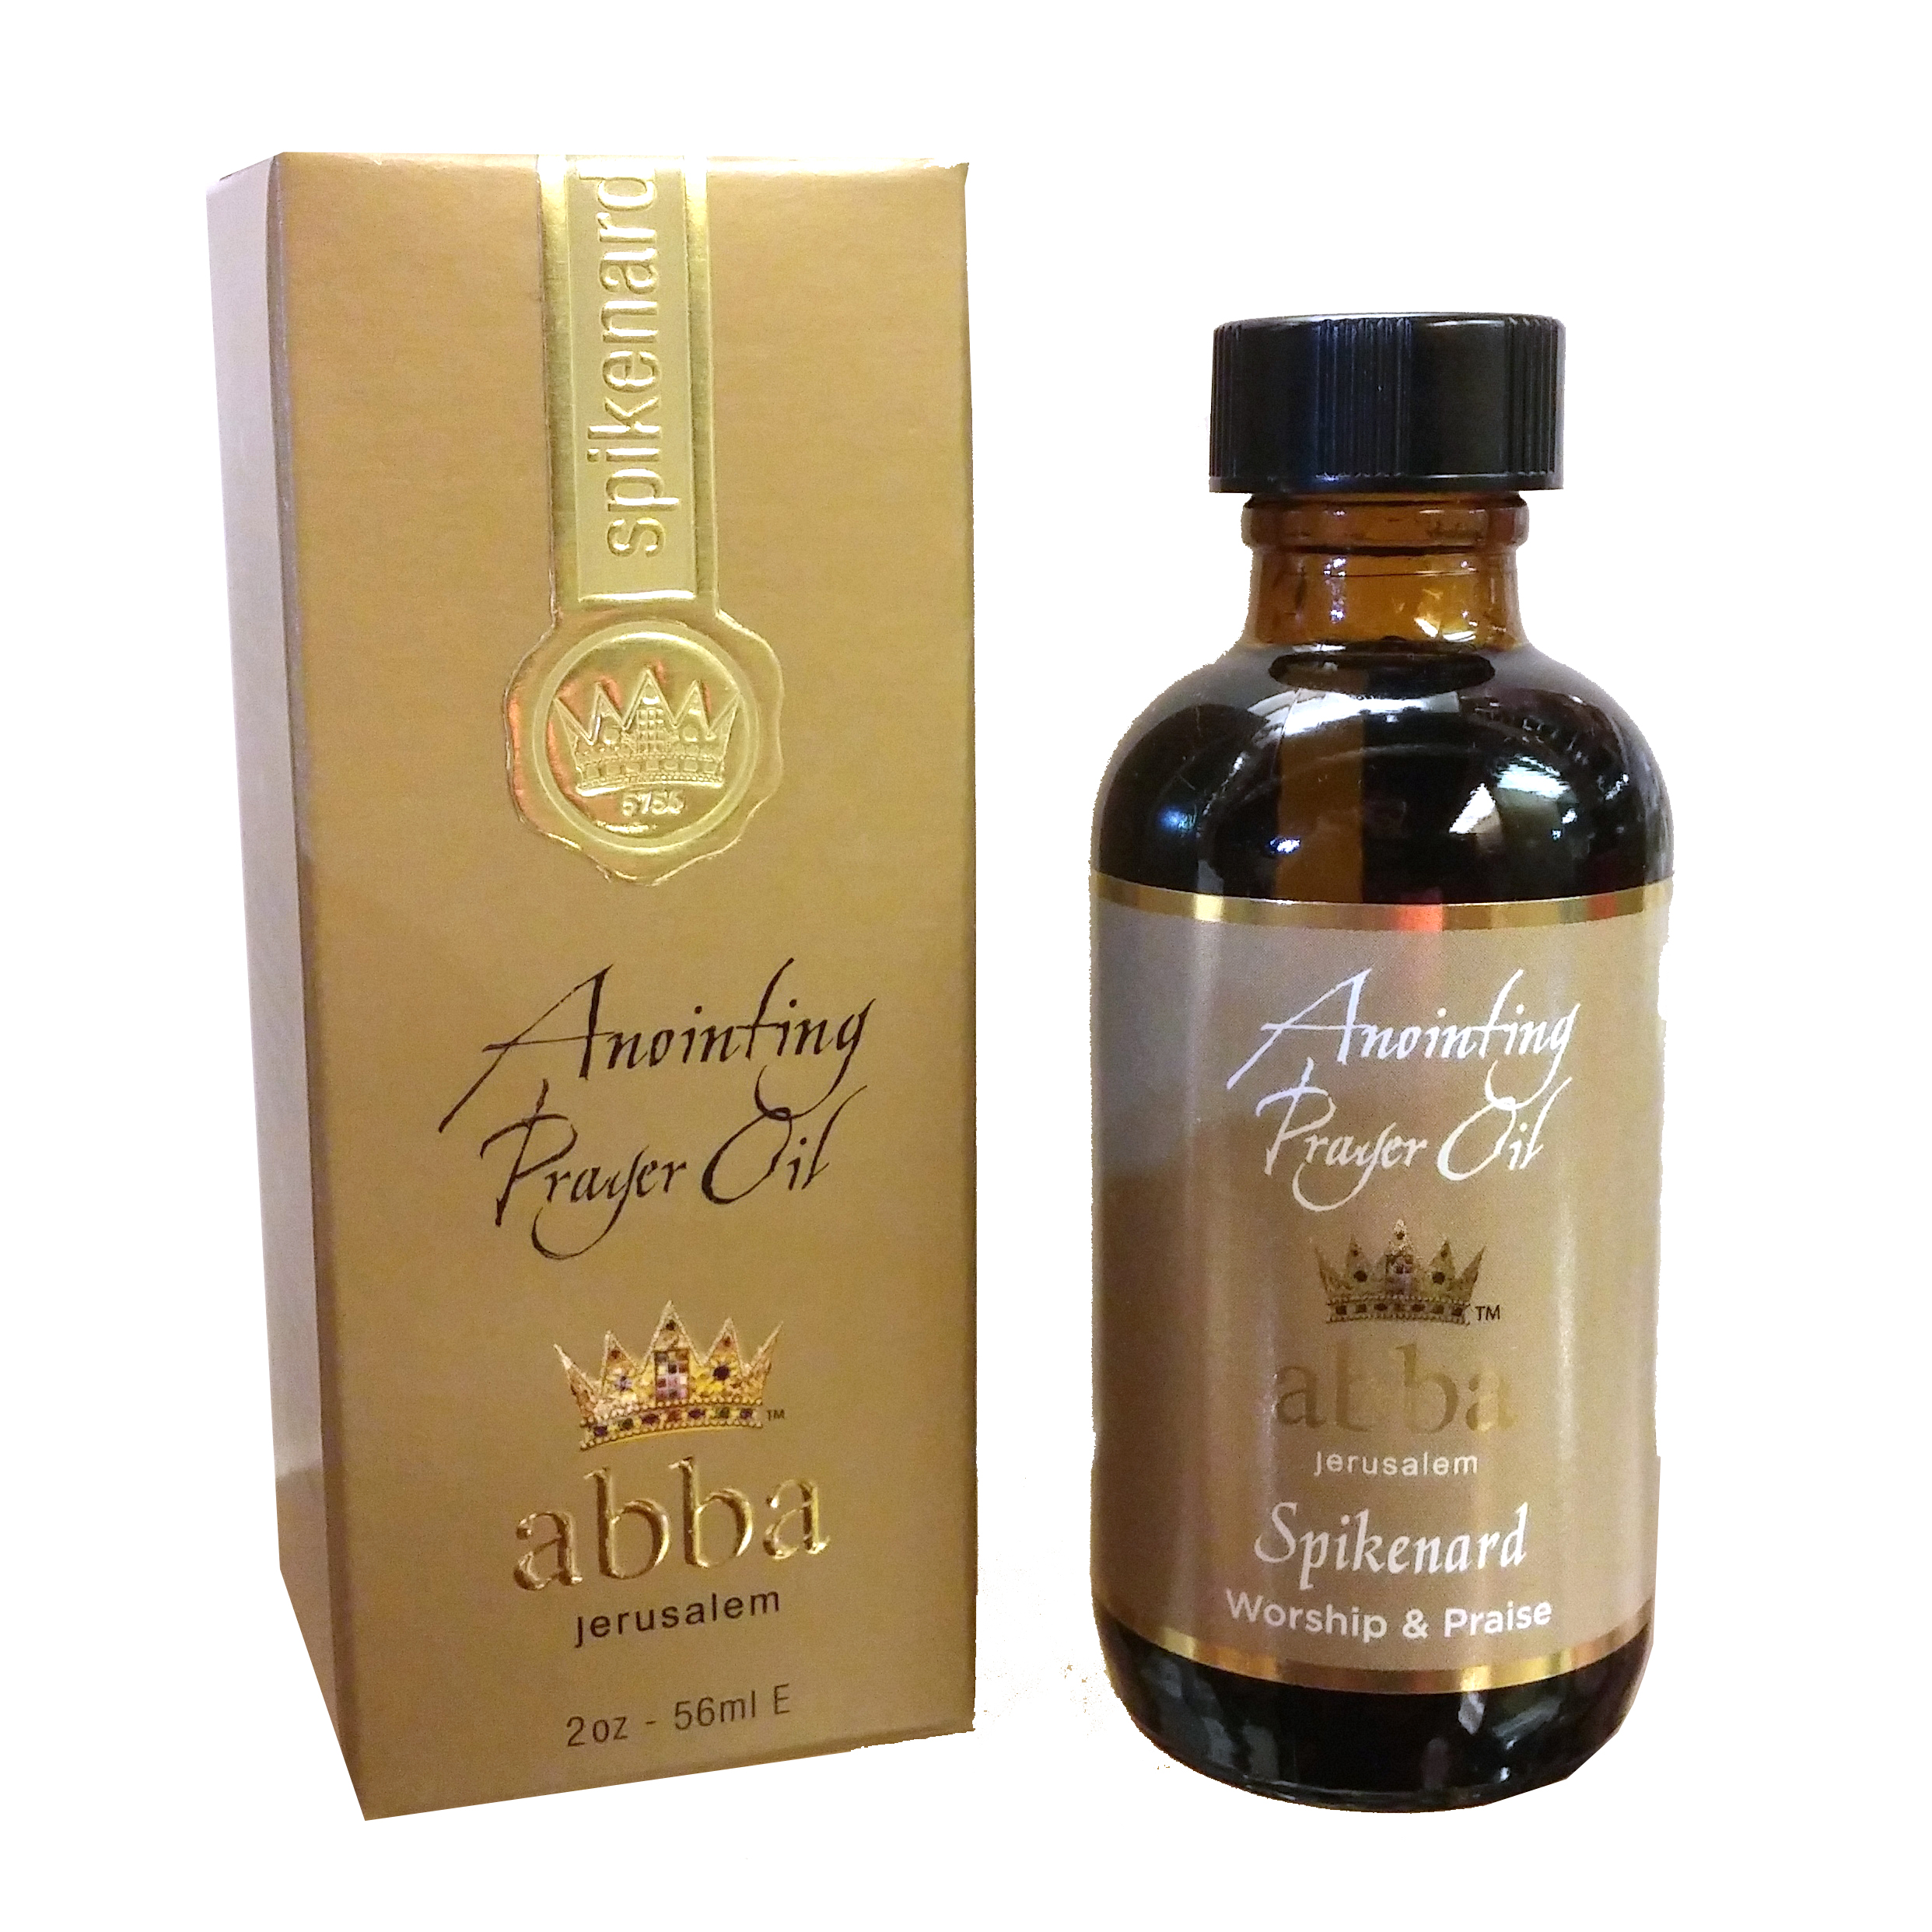 2 oz Spikenard Anointing Prayer Oil